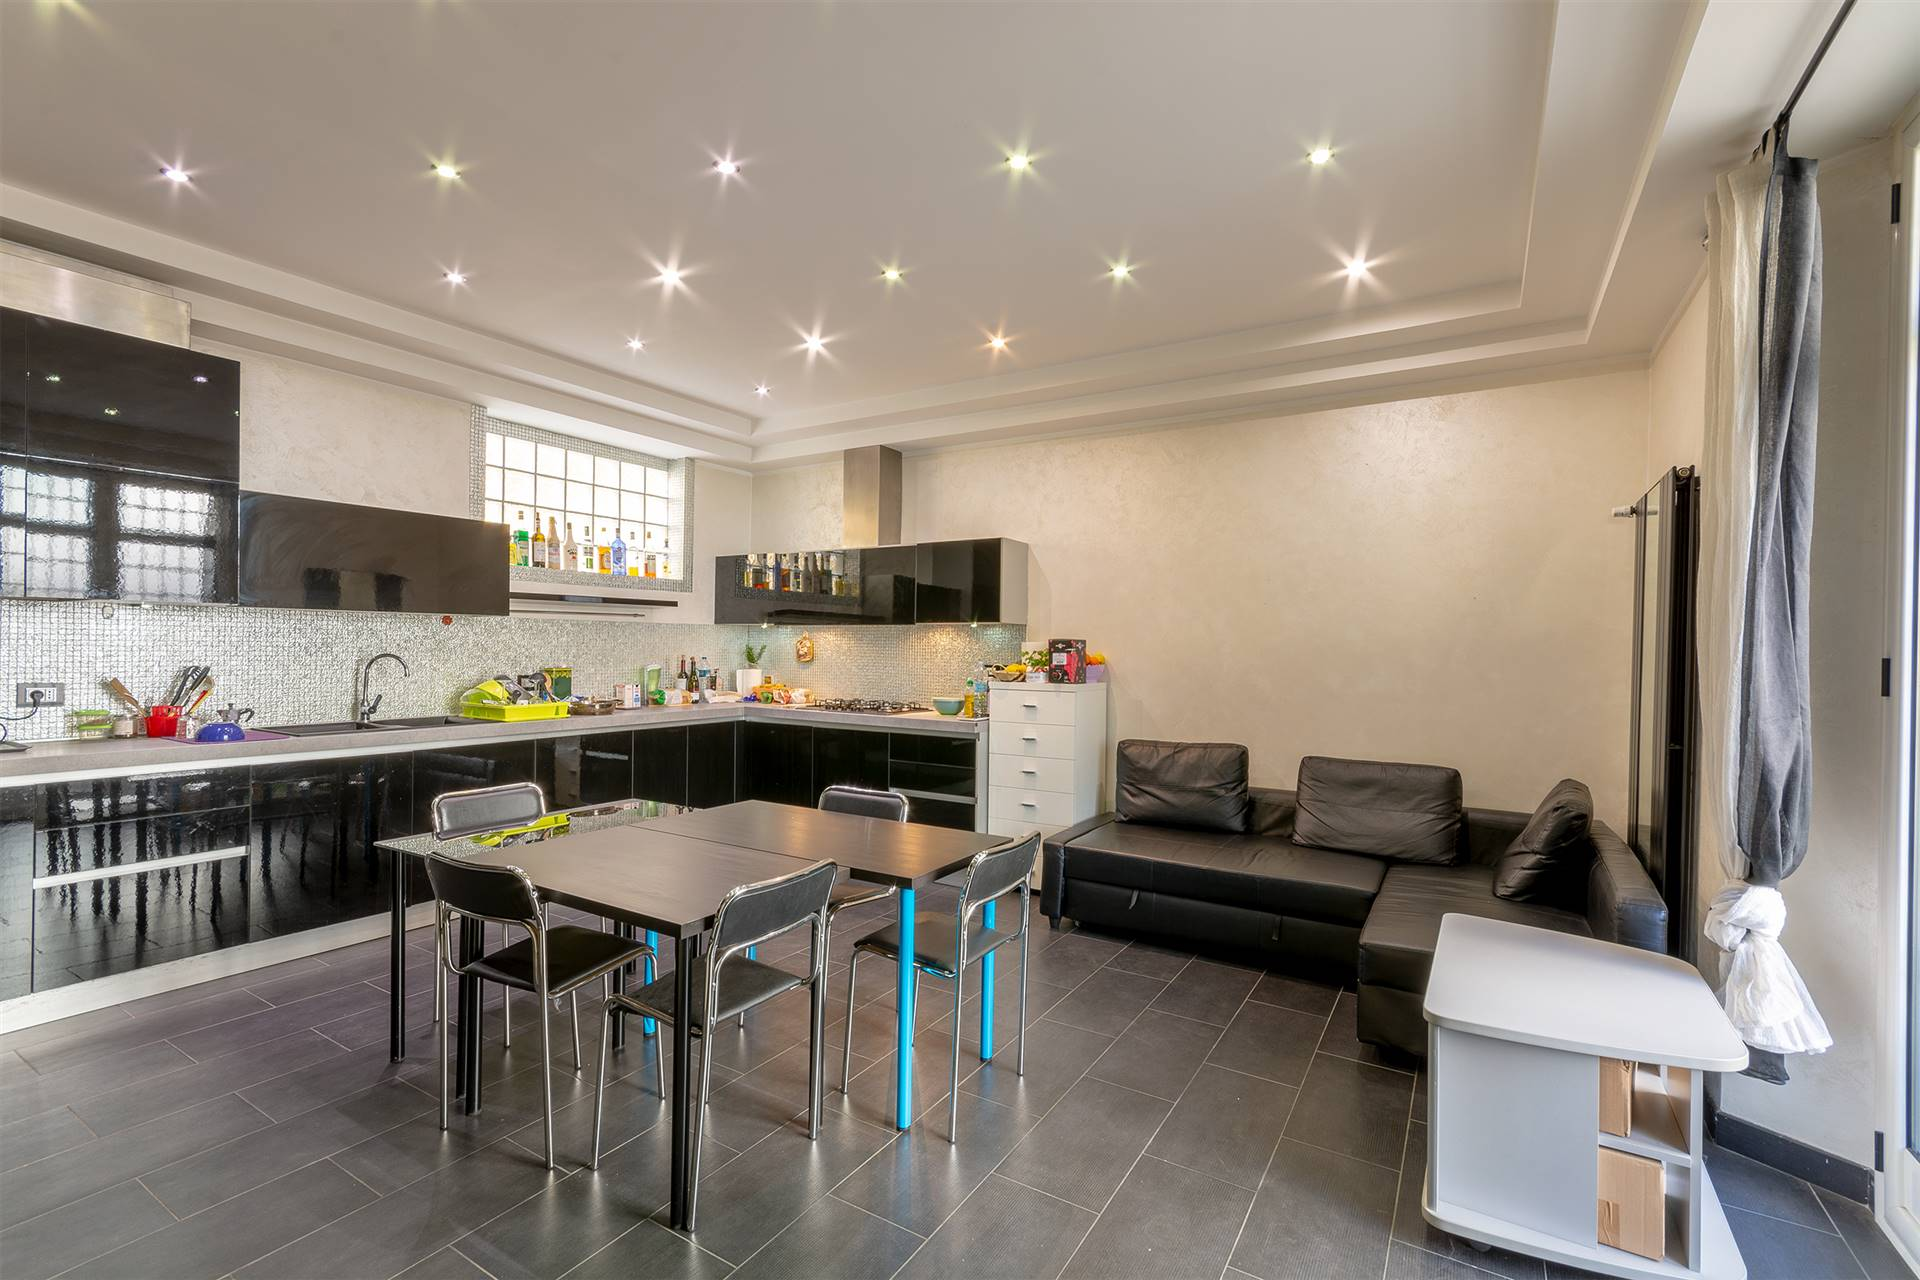 STATUTO, FIRENZE, Apartment for sale of 110 Sq. mt., Excellent Condition, Heating Individual heating system, Energetic class: F, Epi: 301,59 kwh/m2